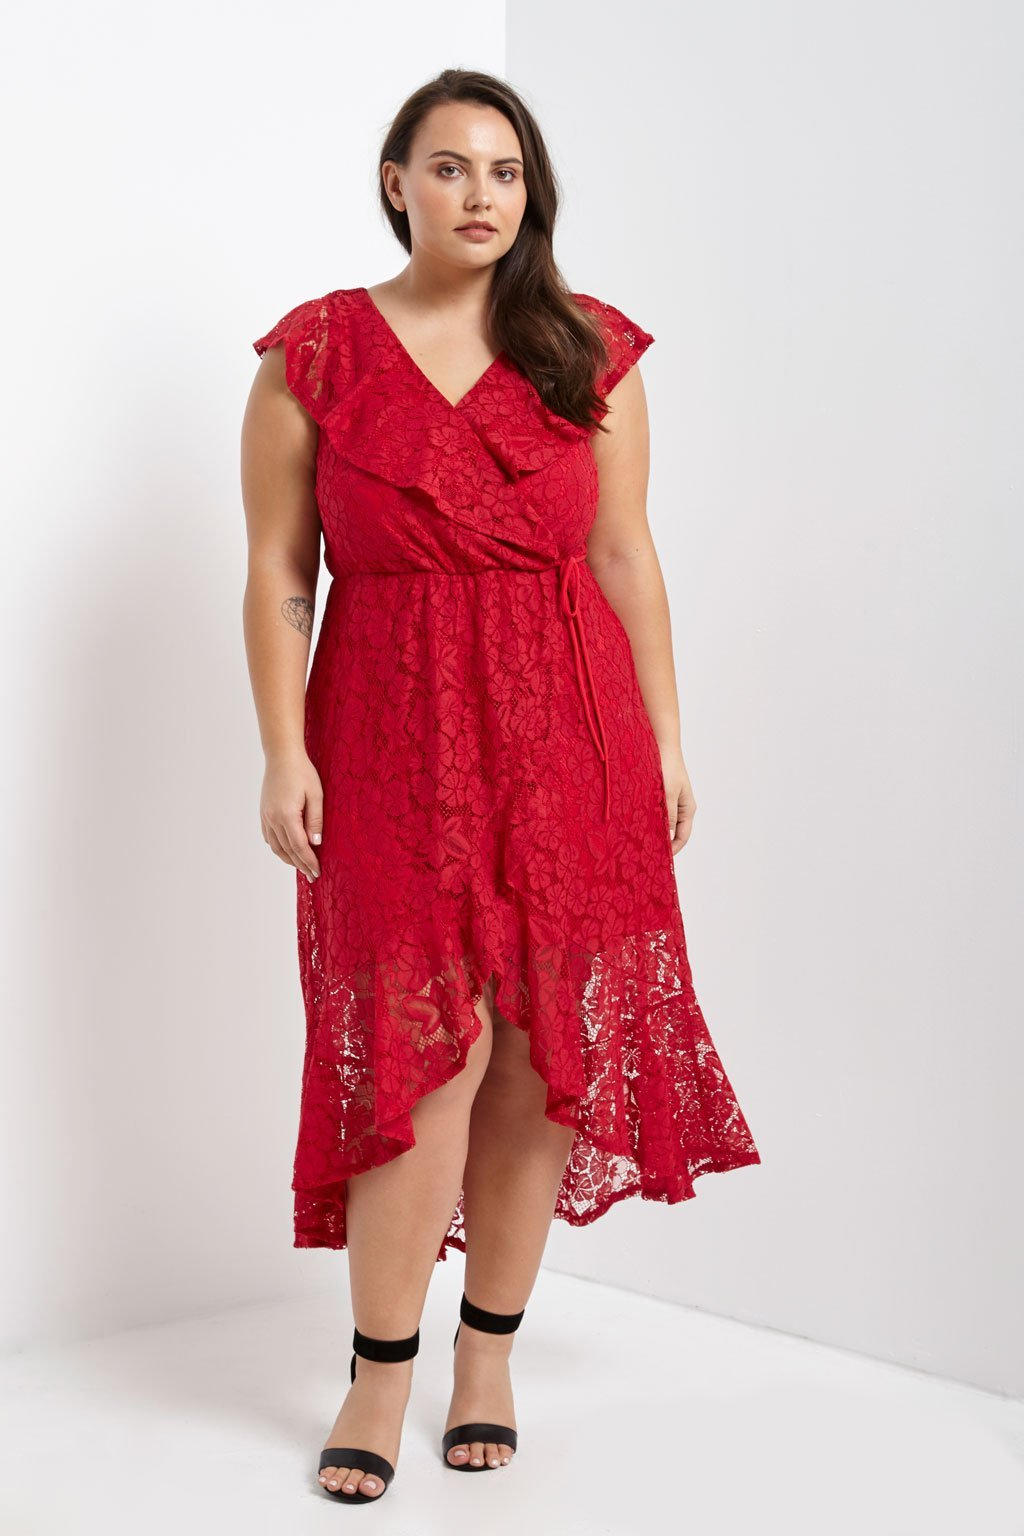 Poshsquare Plus Lace Ruffle Wrap Dress Plus Size